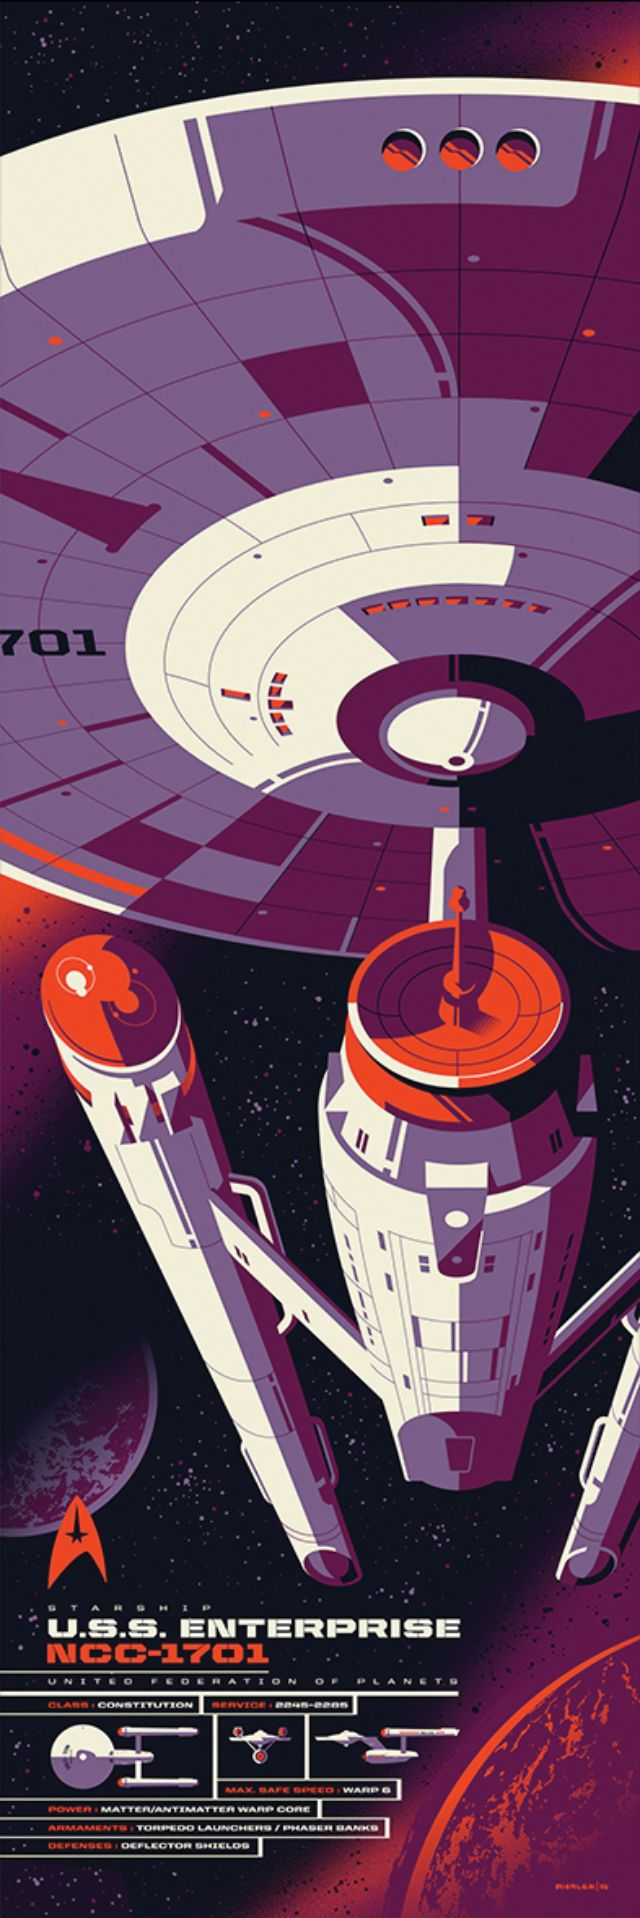 """U.S.S. Enterprise Spec Sheet"" by Tom Whalen"